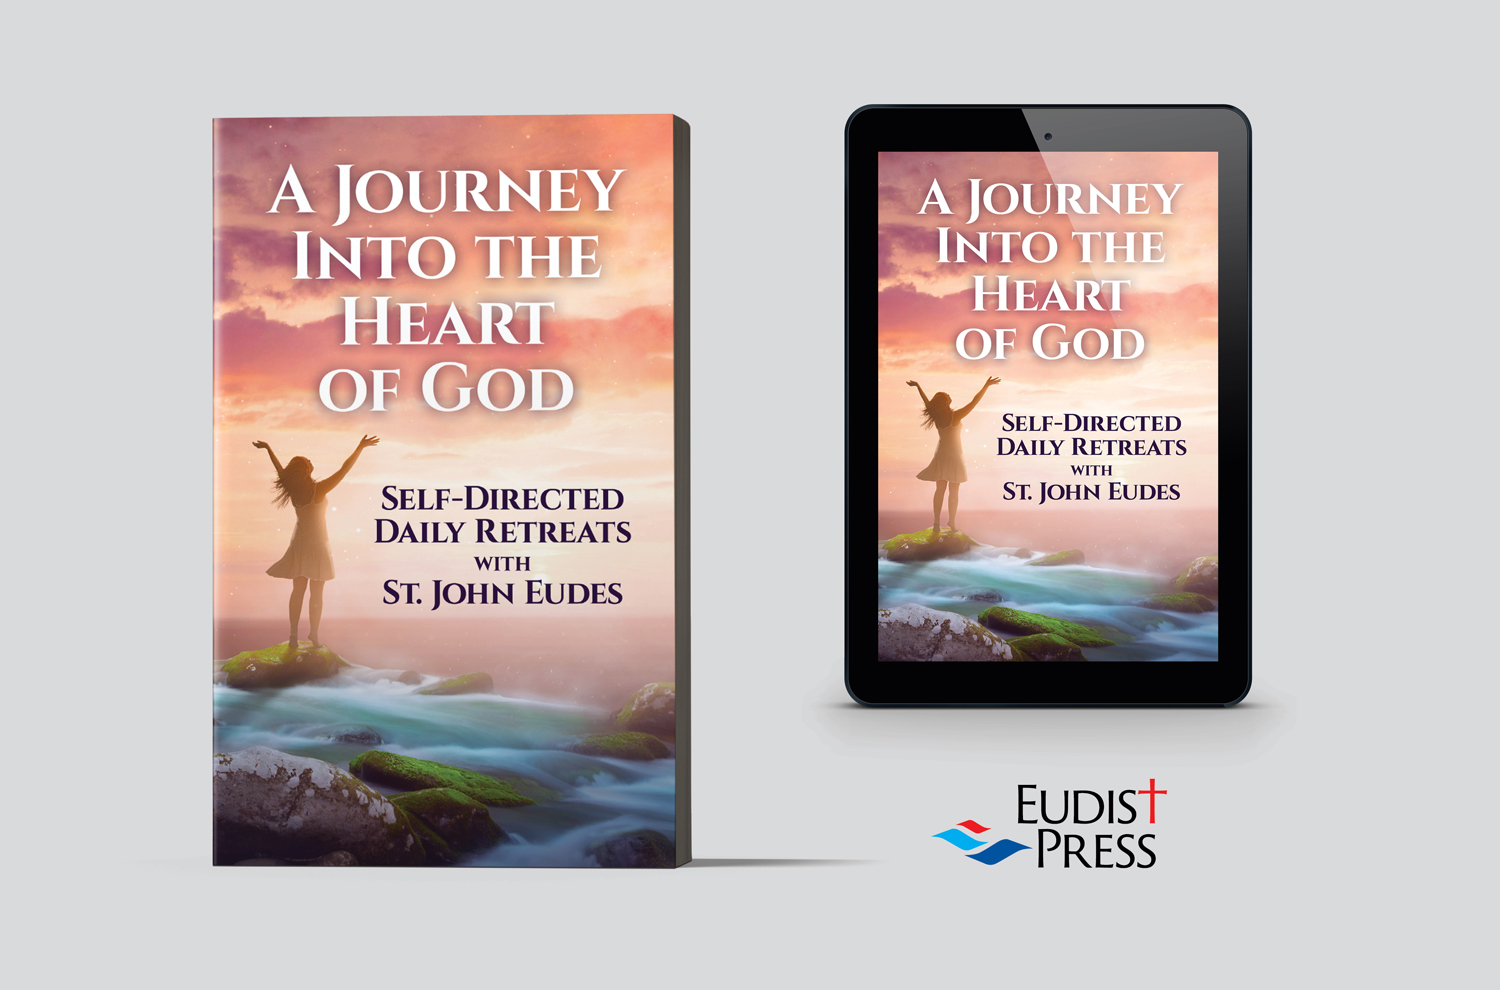 A Journey Into the Heart of God: Self-Directed Daily Retreats with St. John Eudes